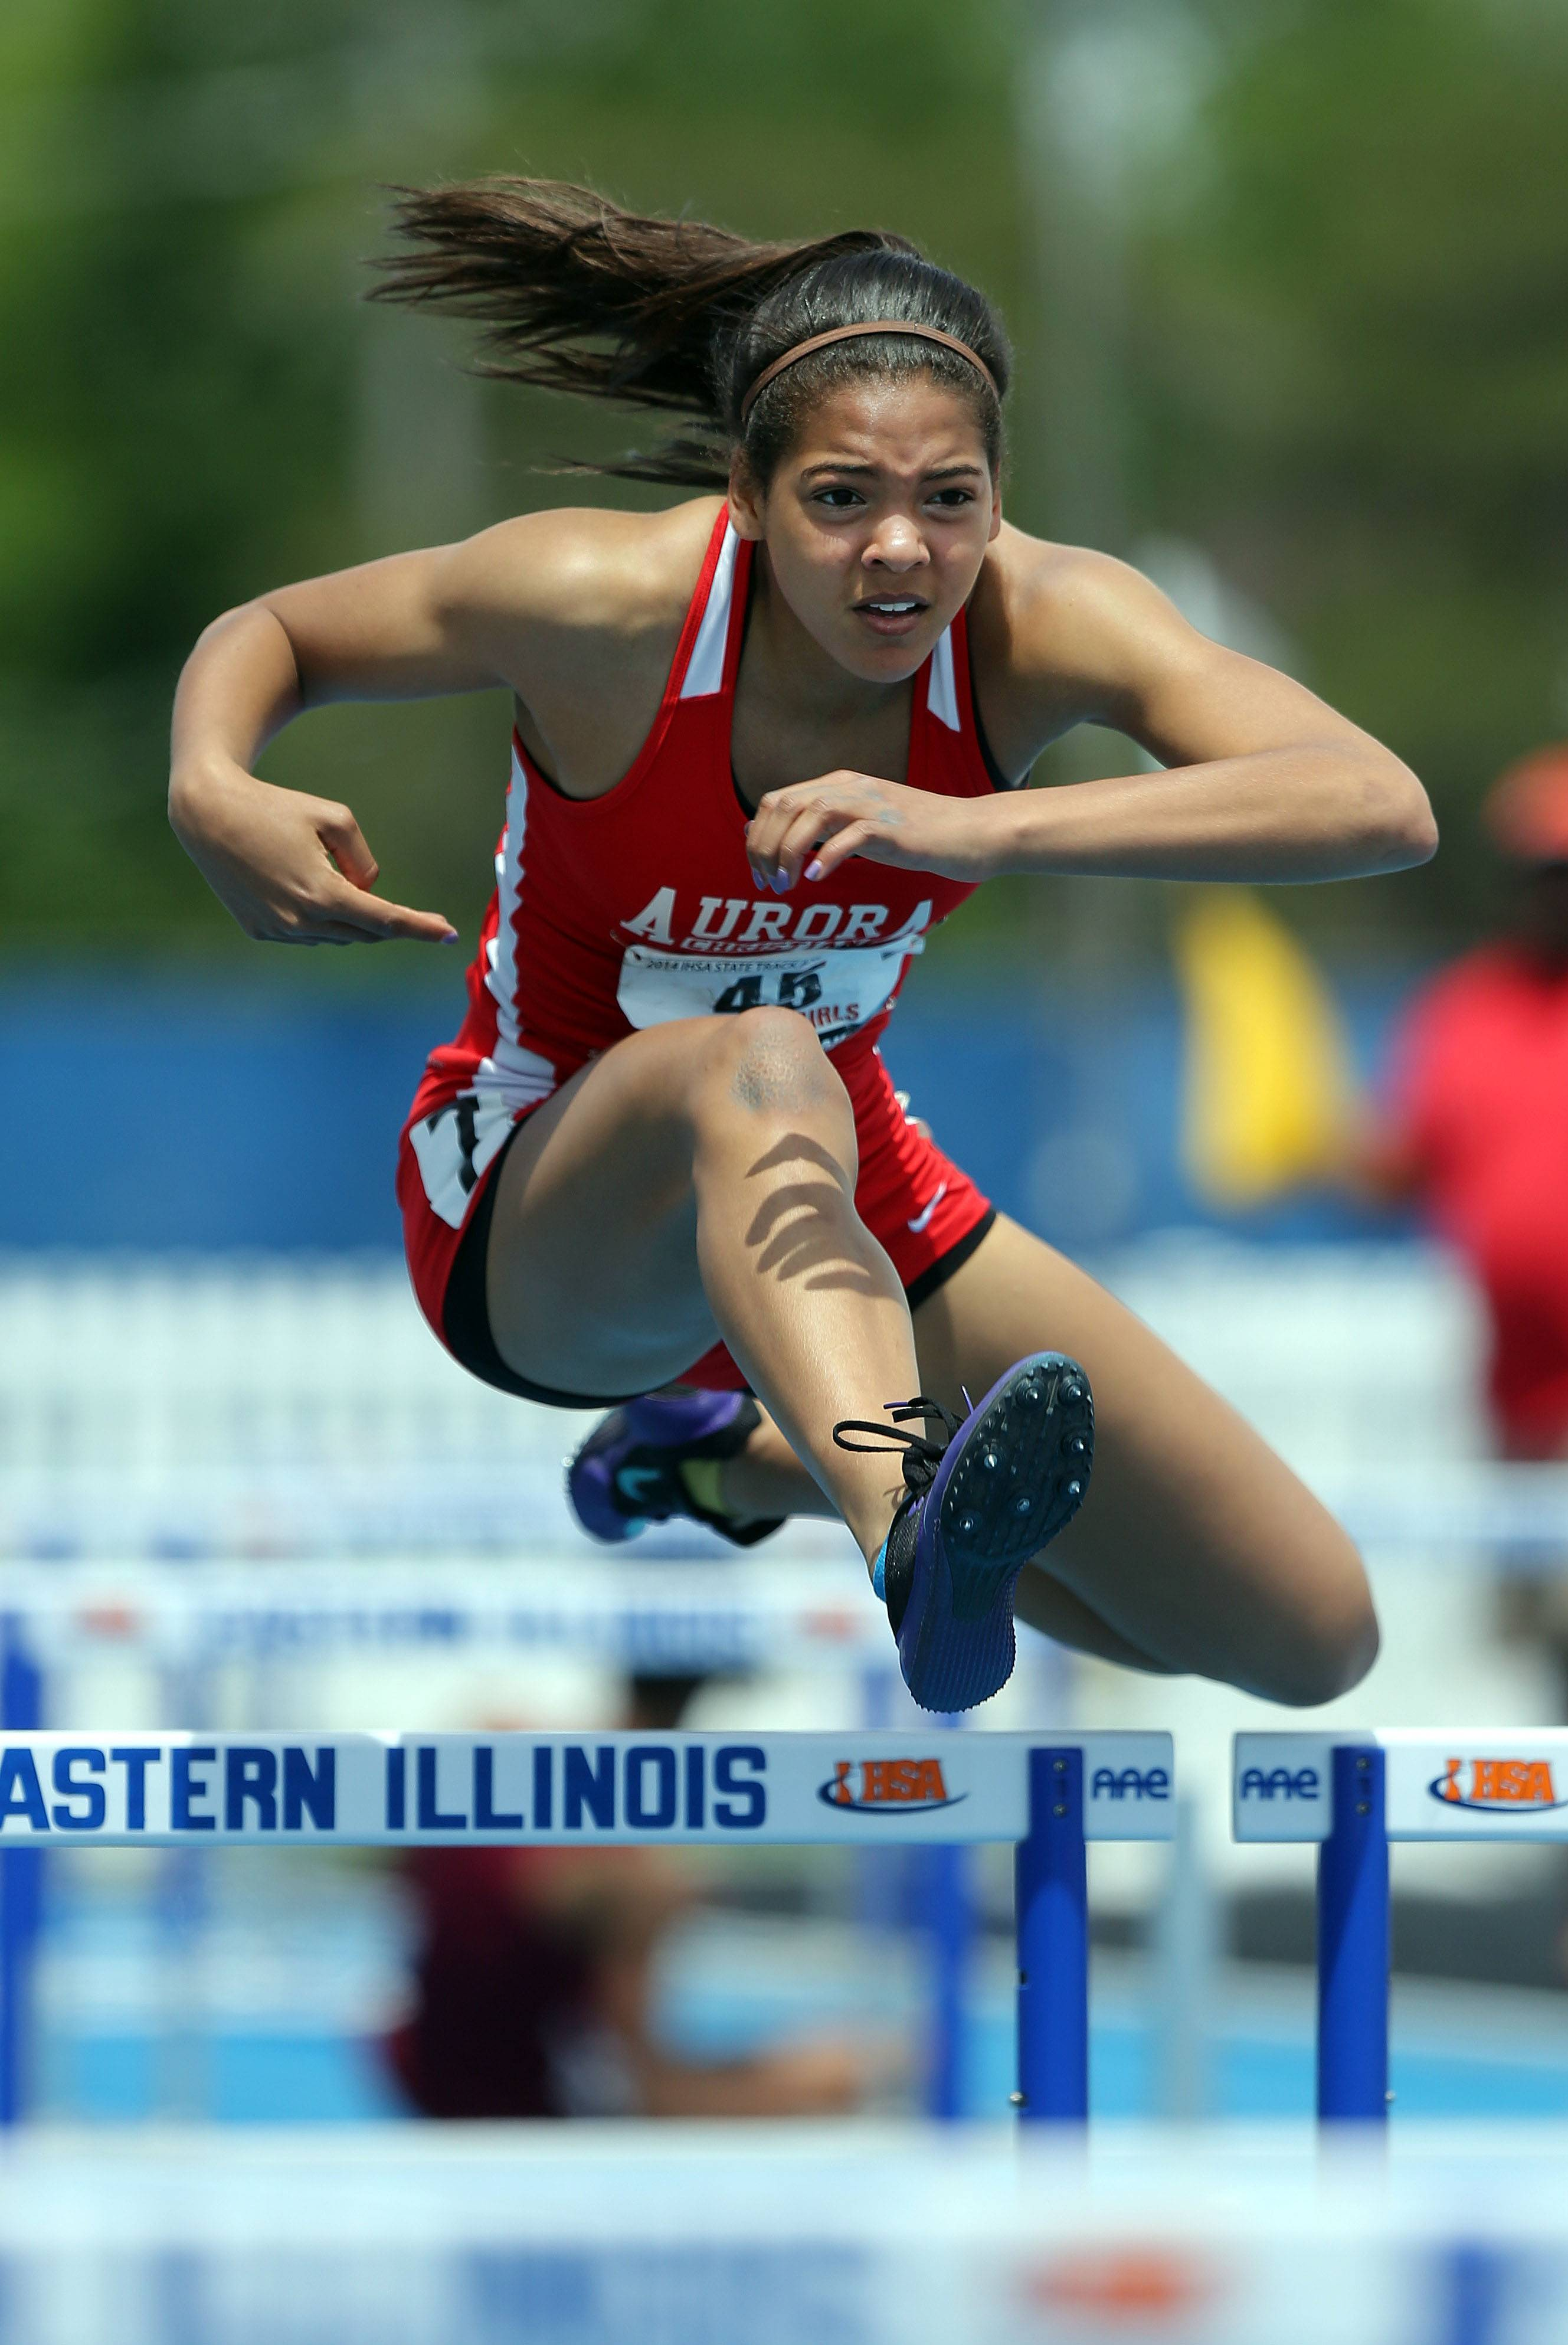 Aurora Christian's Peyton Wade competes in the 100-meter high hurdles during the girls track and field state finals at Eastern Illinois University in Charleston Saturday.